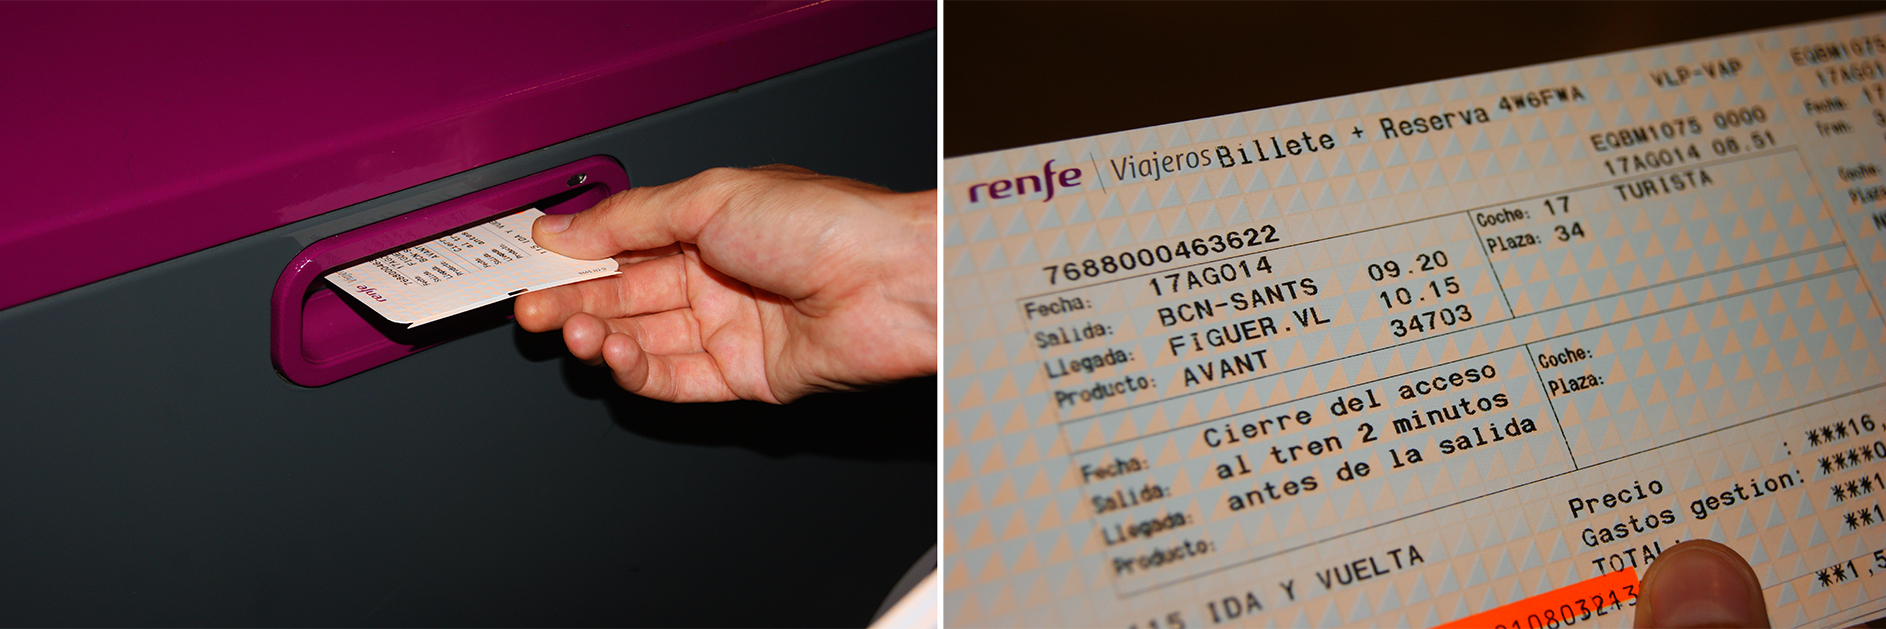 Renfe-Billete